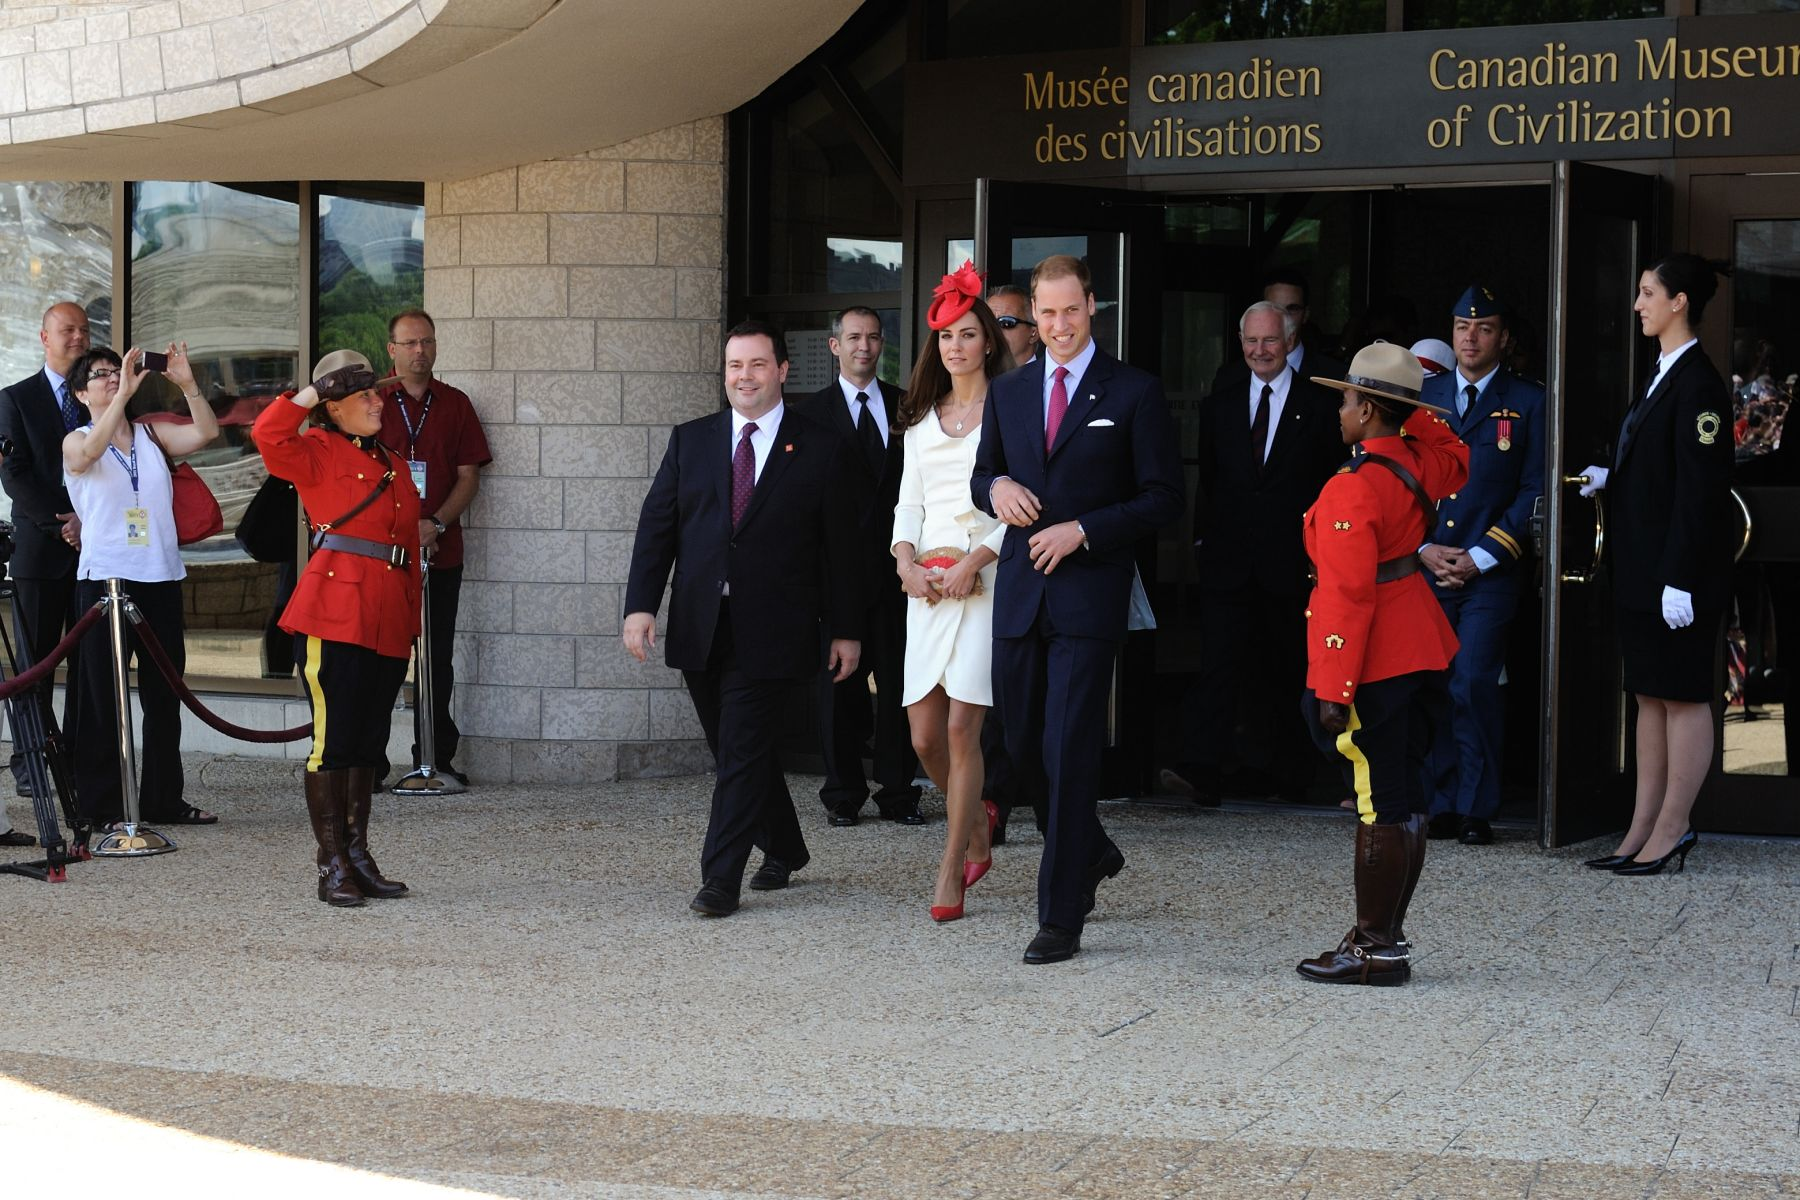 Their Royal Highnesses, accompanied by Their Excellencies, then headed to Parliament Hill to attend the Canada Day Noon Show.